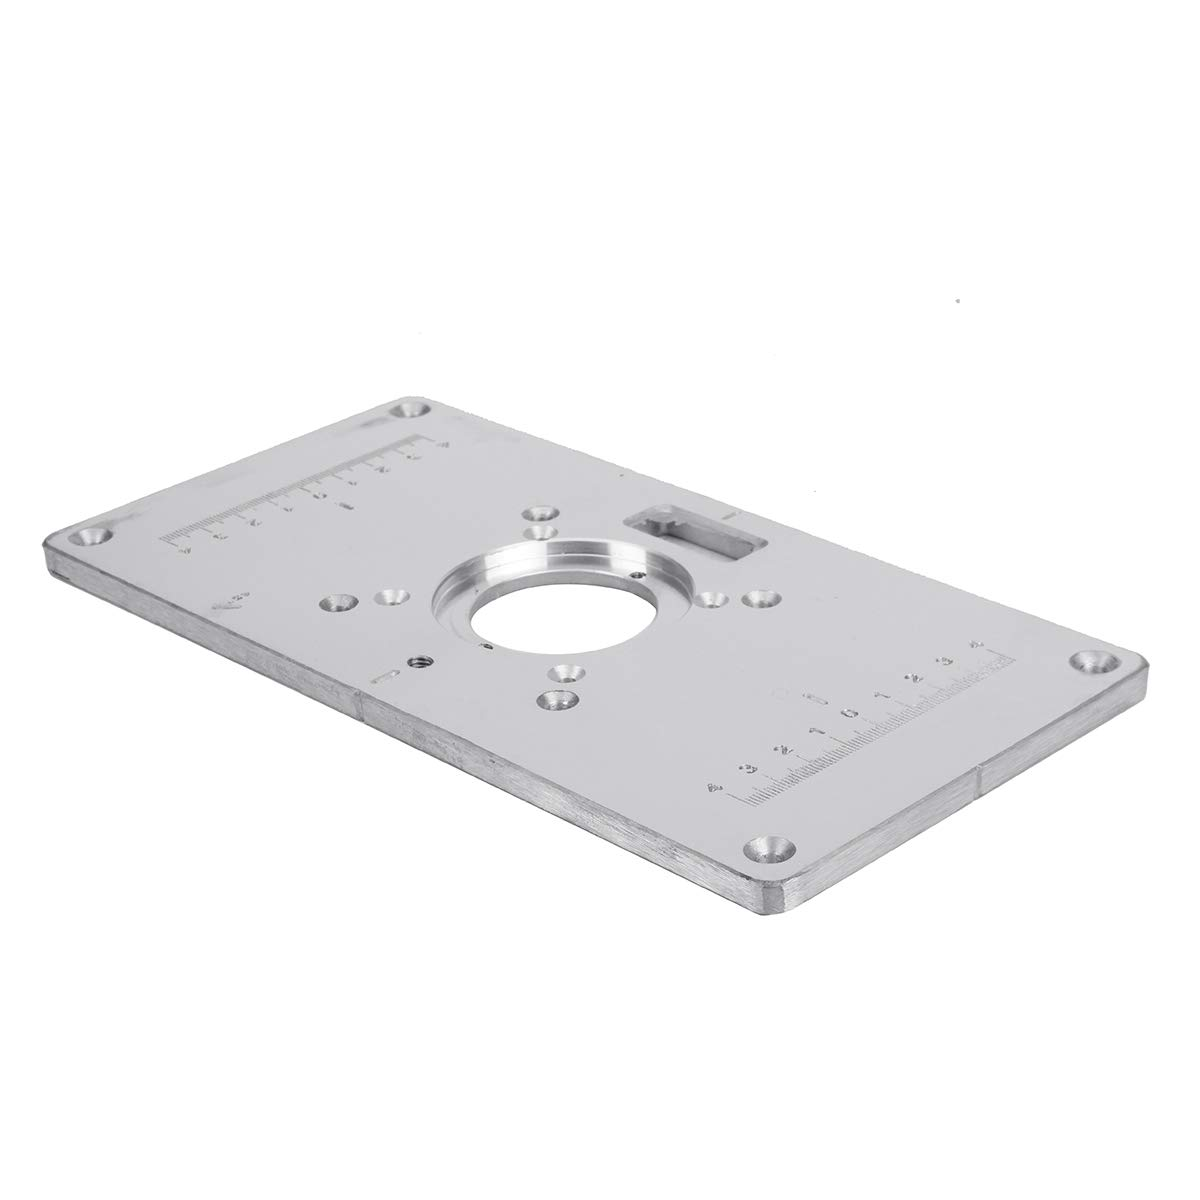 Useful Tools Router Table Insert Plate,Multifunctional Aluminium Alloy Router Table Insert Plate for Makita 700C Woodworking by MAOFU (Image #7)